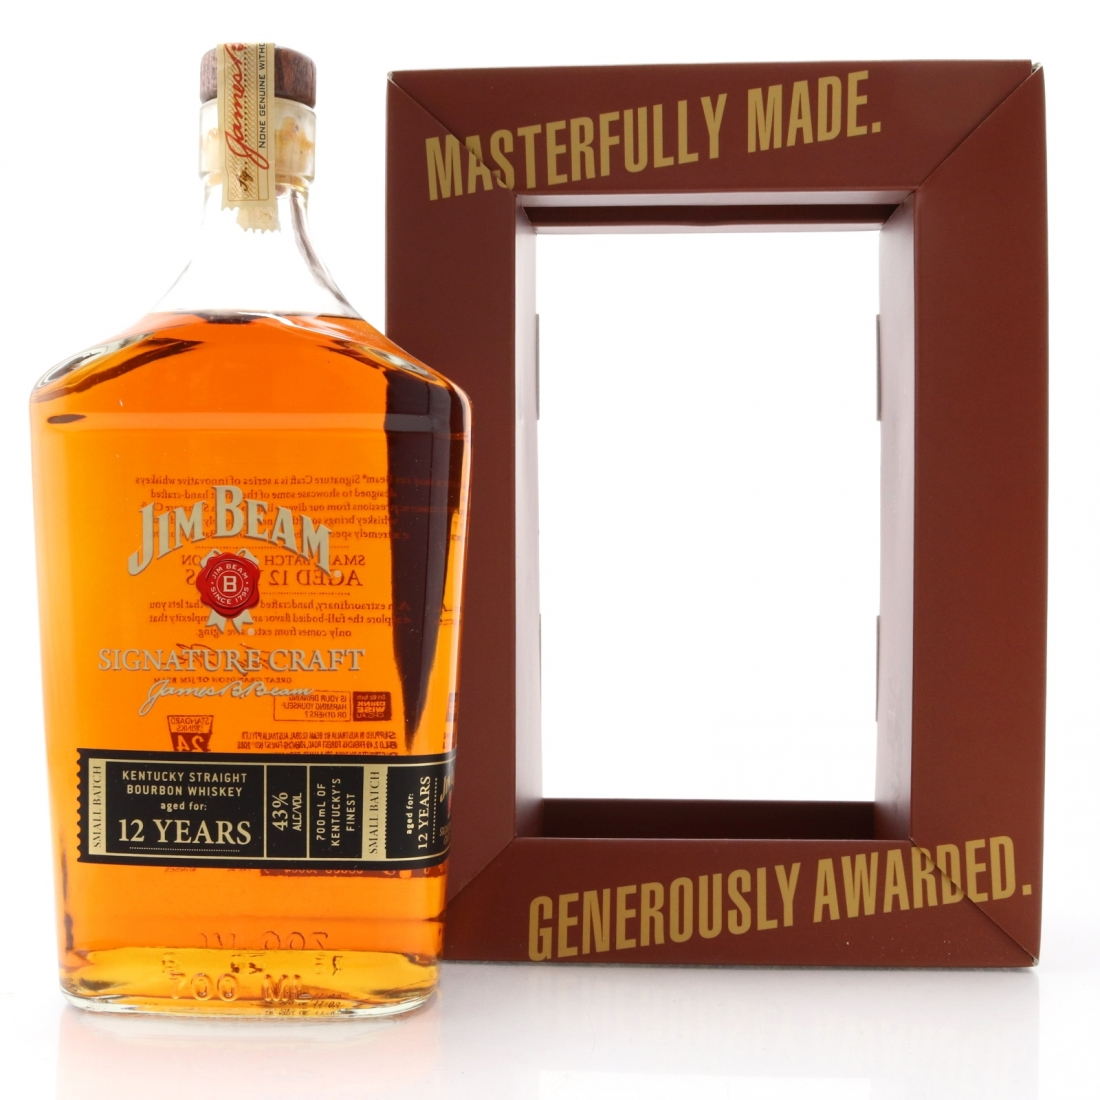 Jim Beam Signature Craft 12 Year Old